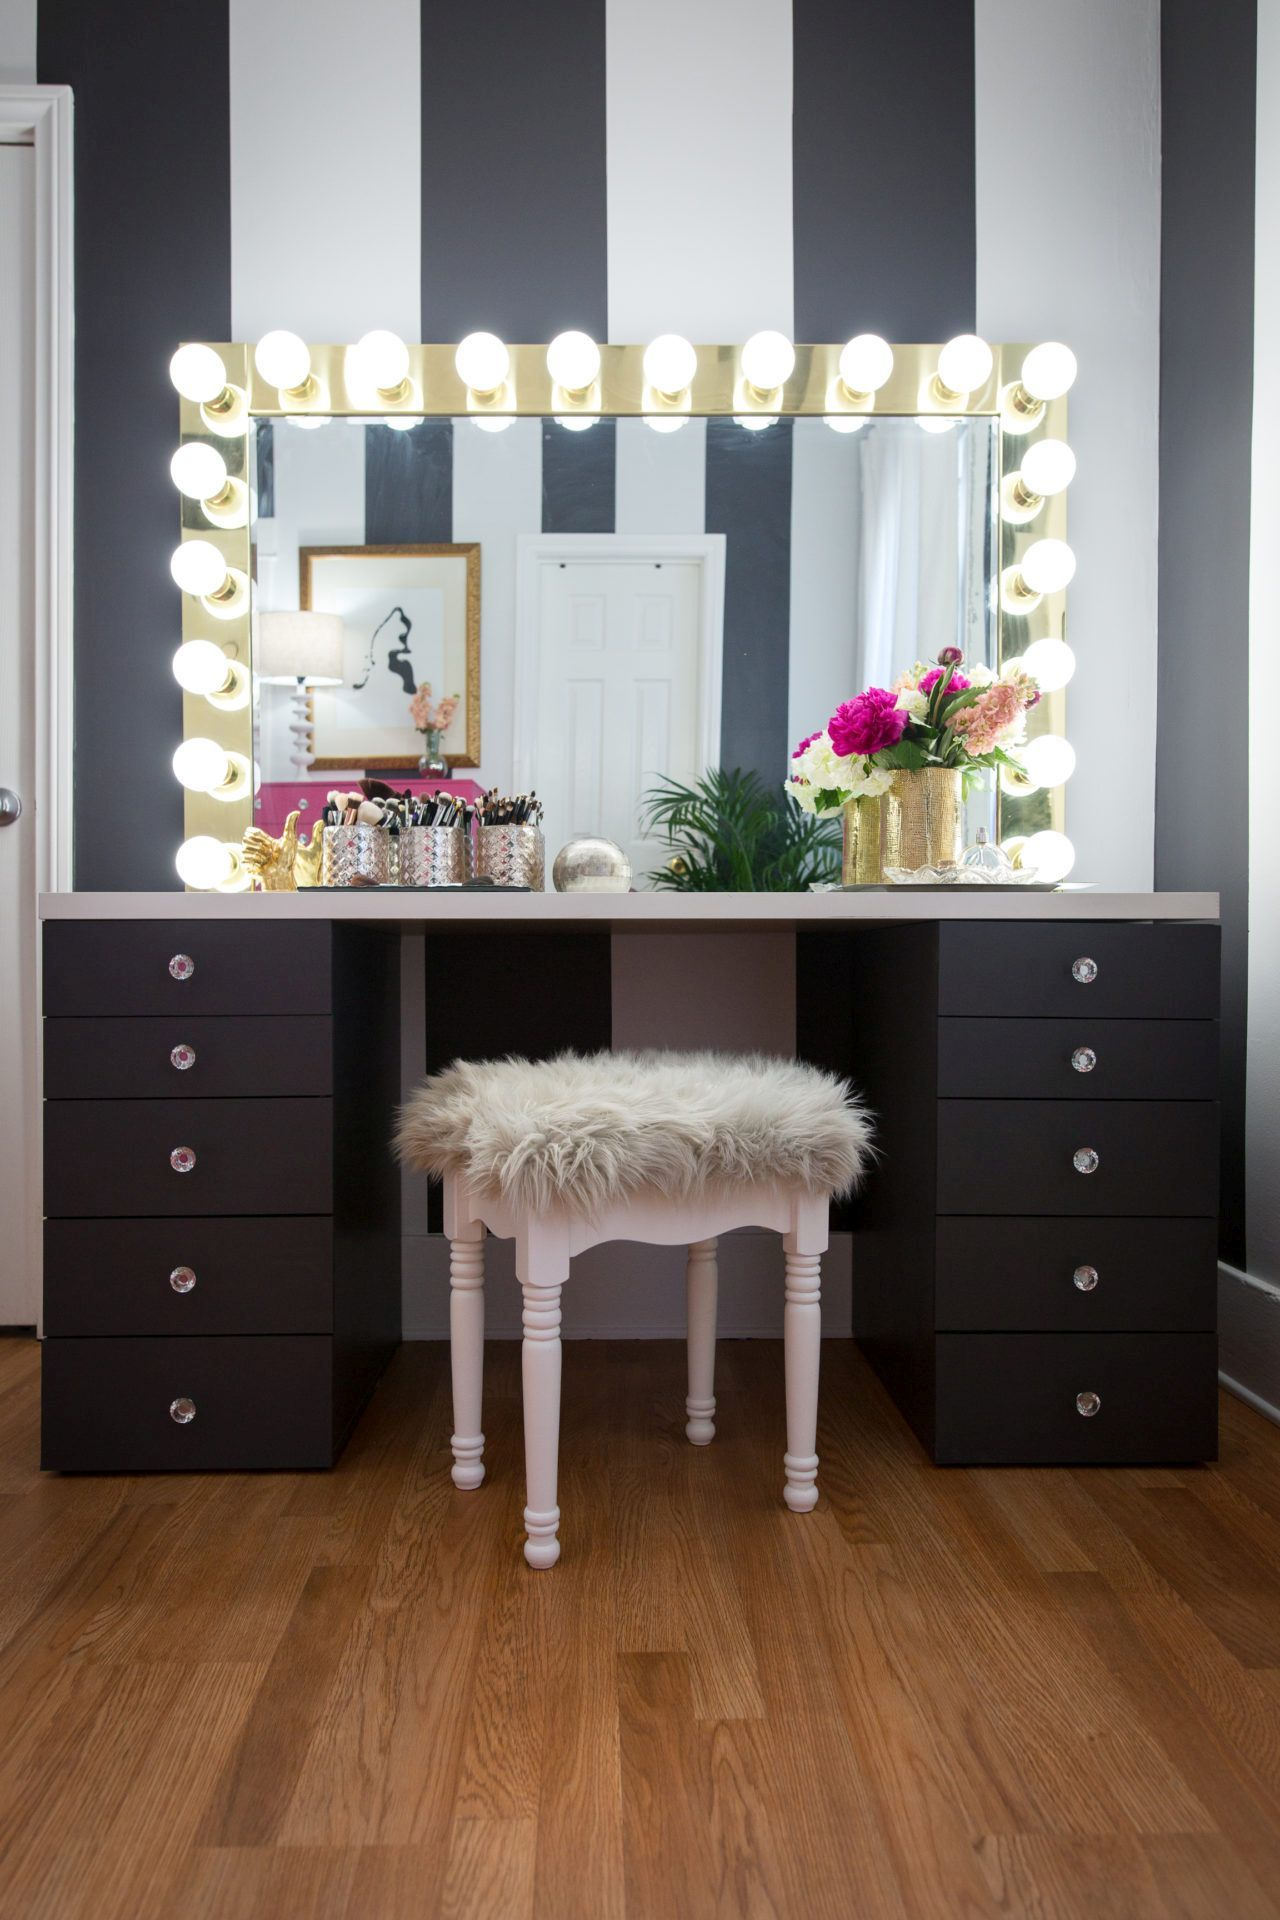 10 DIY Vanity Mirror Projects That Show You In A Different